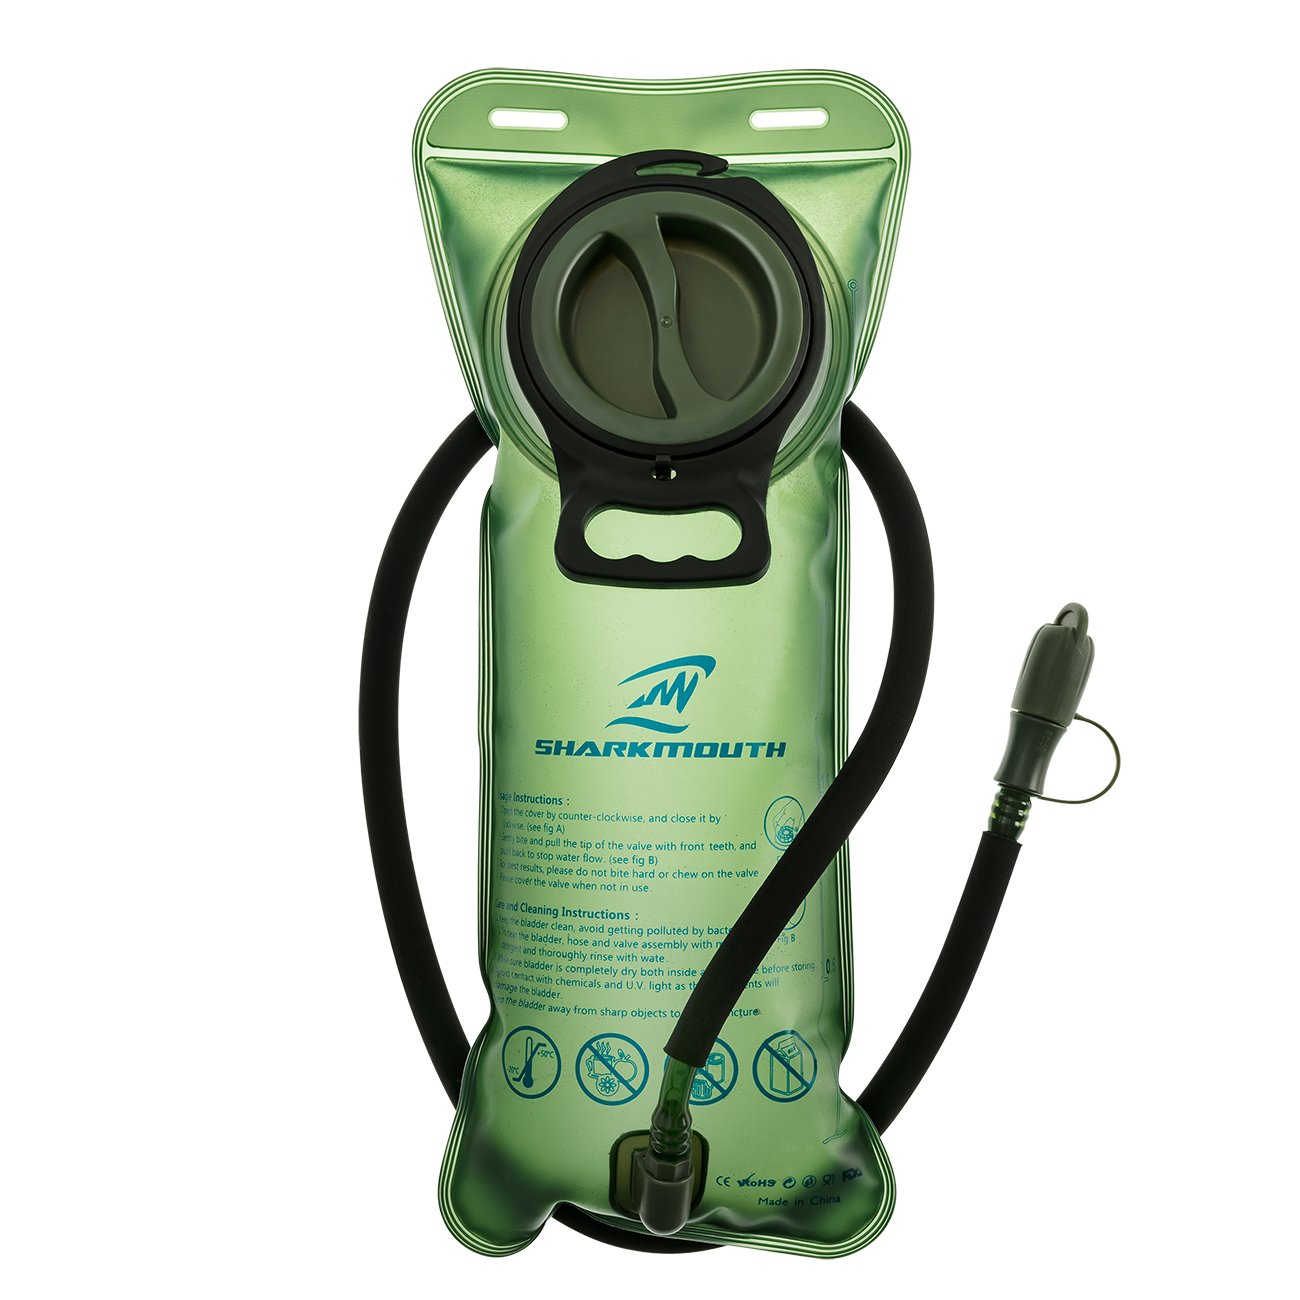 SHARKMOUTH 2 Liter Hydration Bladder - Heavy Duty Replacement Water Reservoir - Leak Proof Cap - Best for Hiking, Camping, Cycling, Hunting